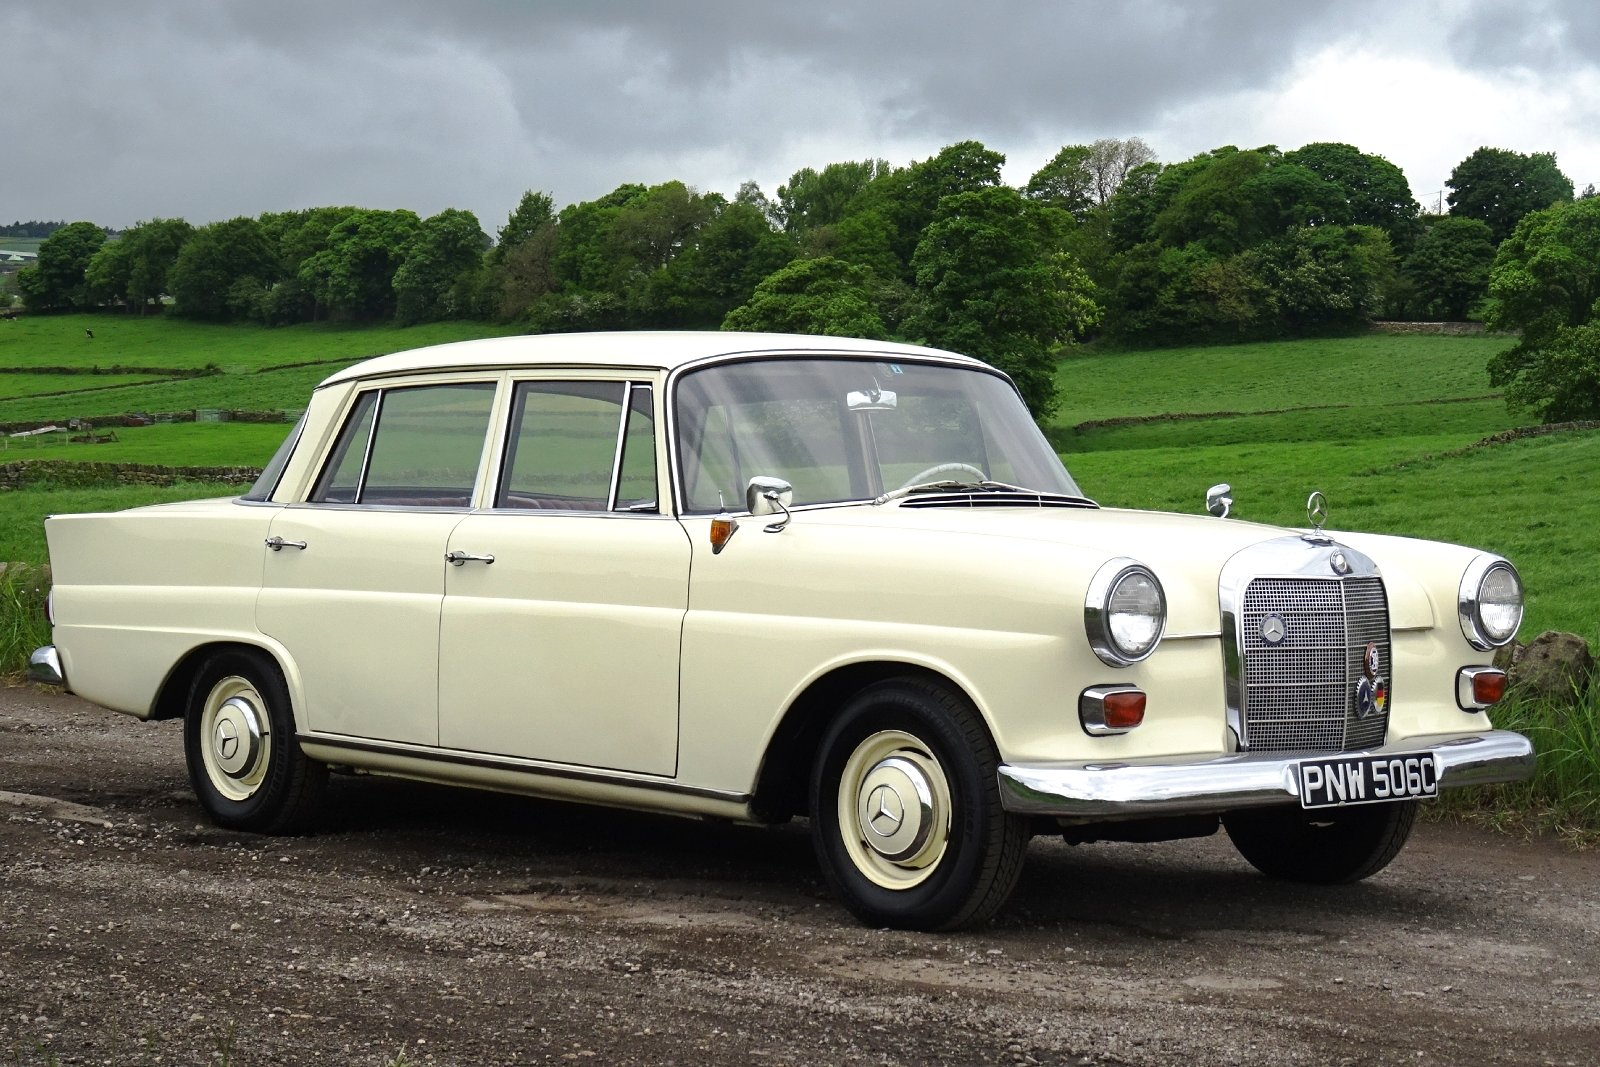 1965 MERCEDES 190 FINTAIL SALOON SOLID BODY BEAUTIFUL INTERIOR SOLD (picture 1 of 6)